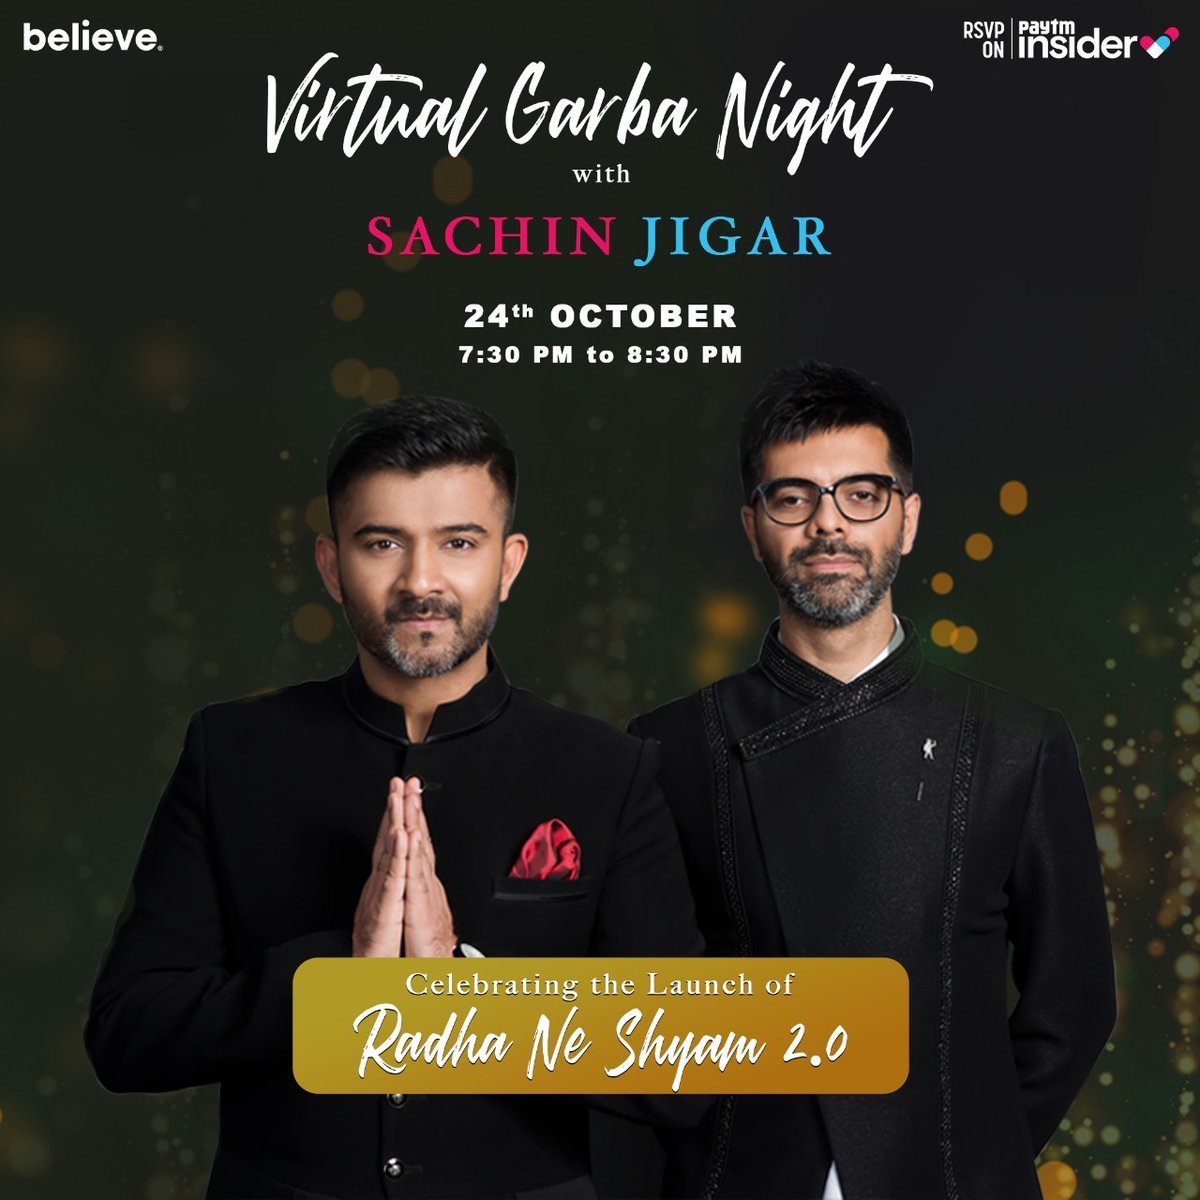 In celebration of their latest release #RadhaneShyam 2.0, @SachinJigarLive are bringing you a #Virtual #Garba concert to dance away the lockdown blues. All you have to do is register for free, tune in and celebrate this day of Navratri with us! Tickets: https://t.co/crqFduve1c https://t.co/HQWOISwPb1